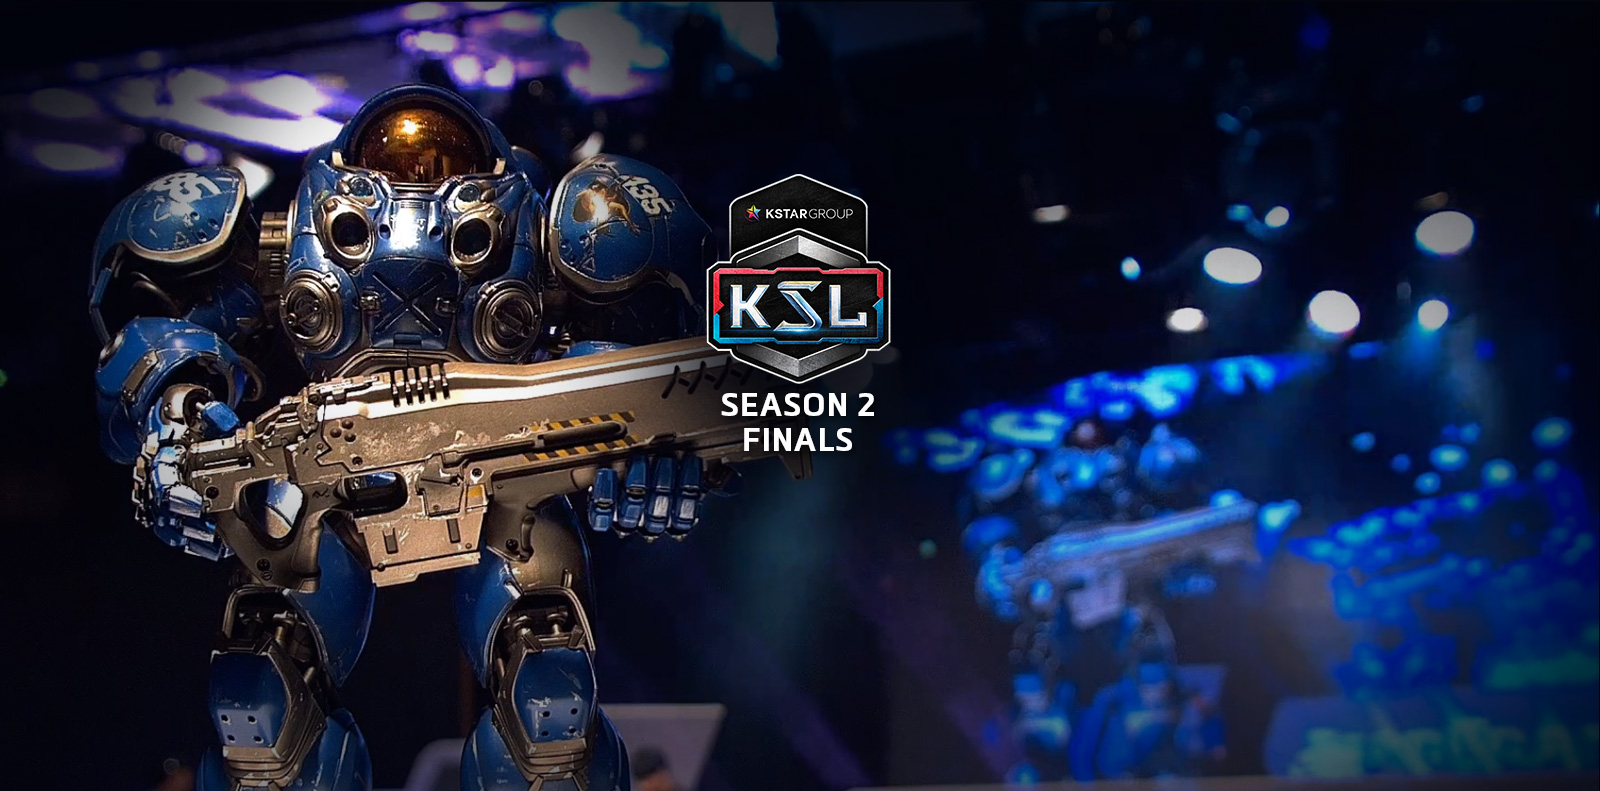 Tickets Now Available for the KSL Season 2 Finals